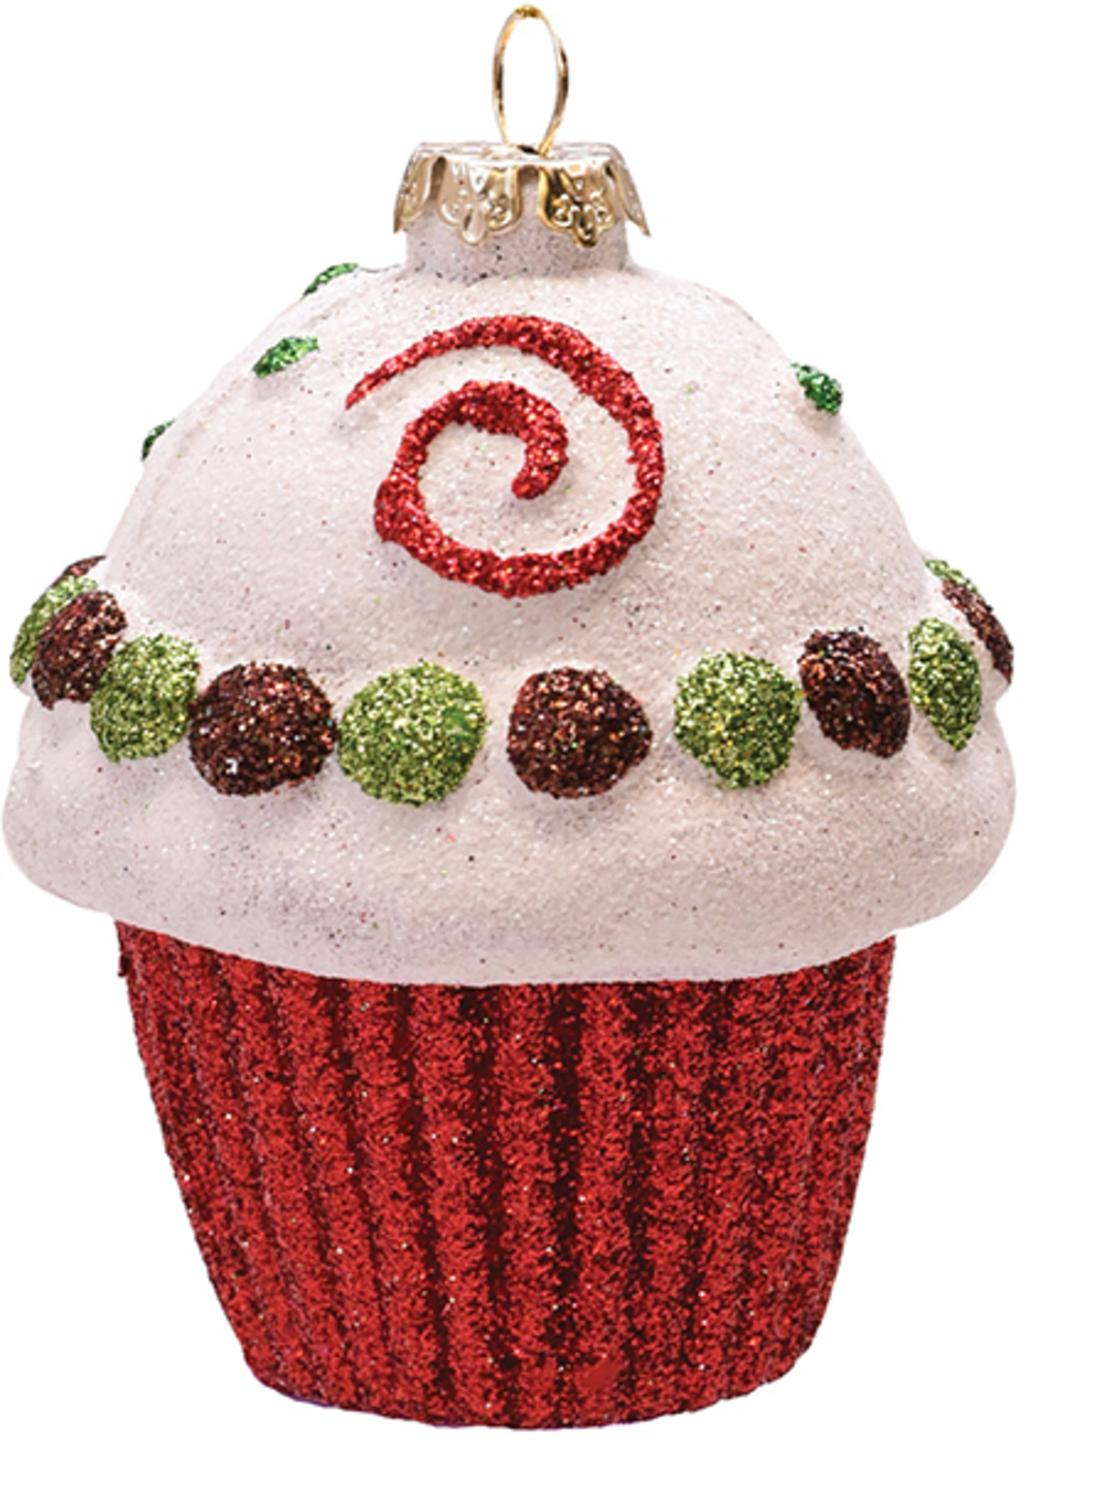 Merry & Bright Red  White And Green Glitter Shatterproof Cupcake Christmas Ornament 3.25